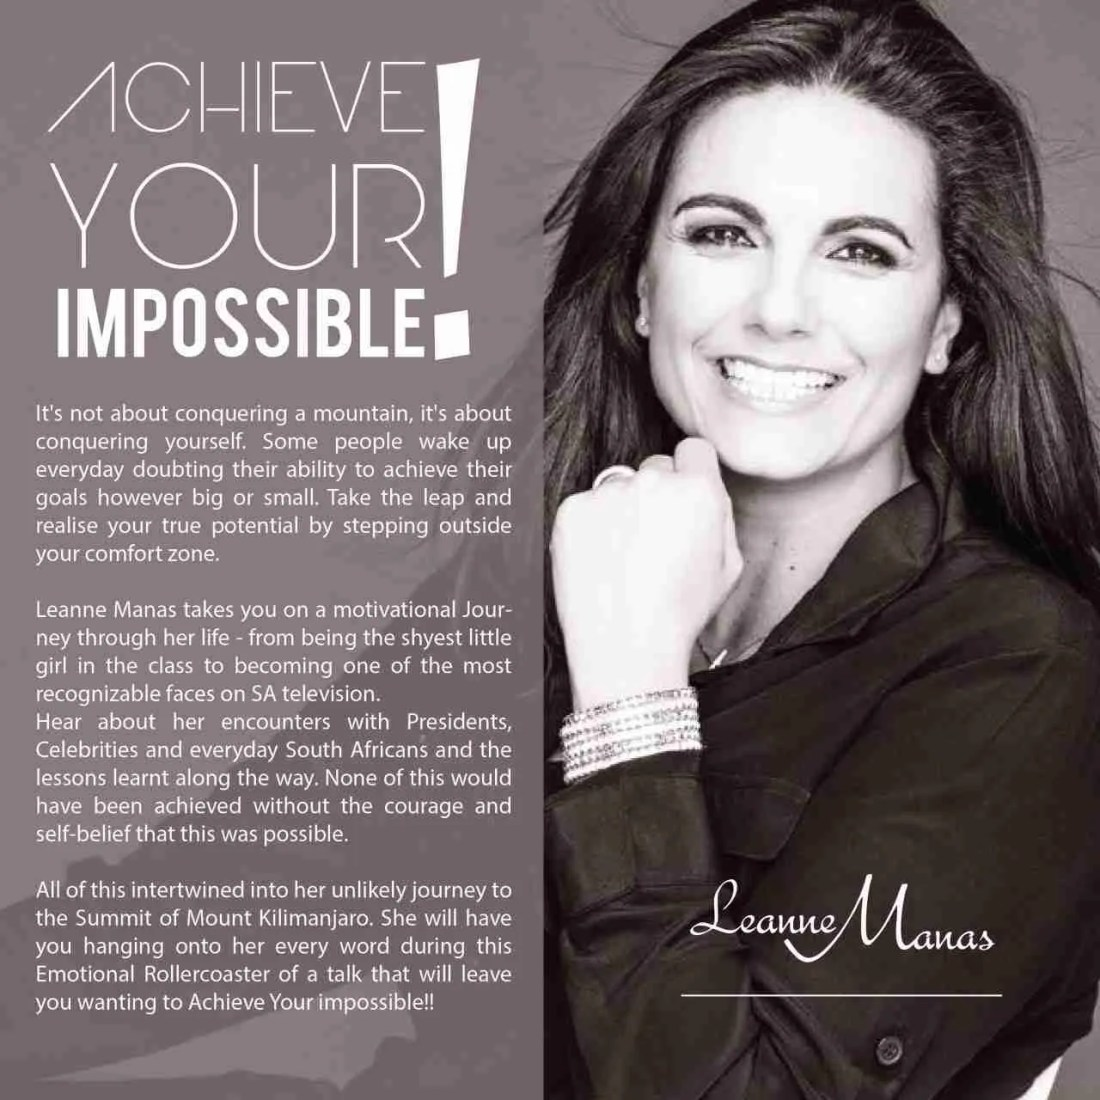 Achieve Impossible - Leanne Manas